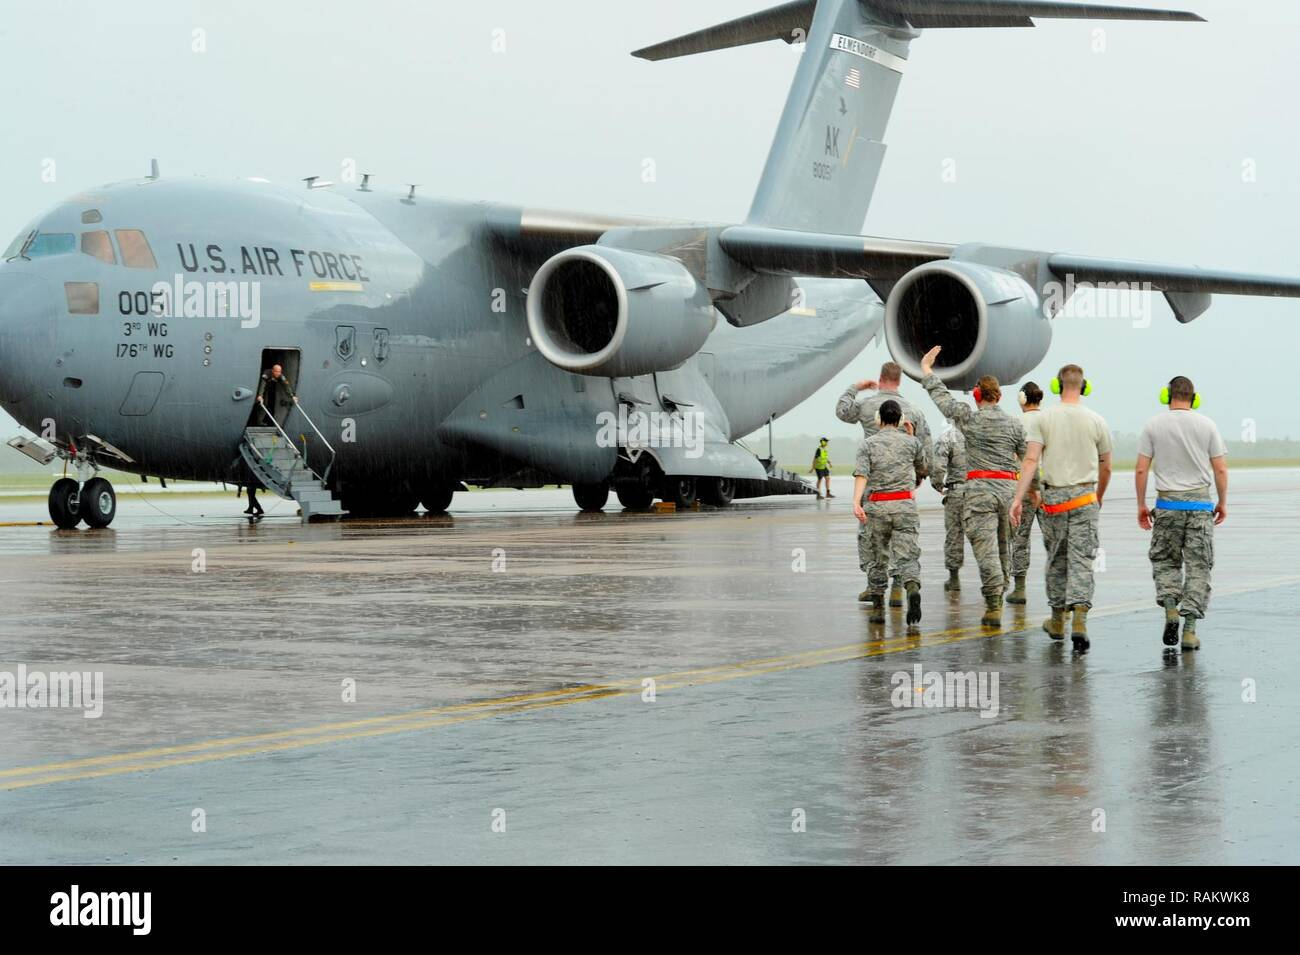 U.S. Airmen exit a C-17 Globemaster arriving from Joint Base Elmendorf-Richardson, Alaska, on the flightline at Royal Australian Air Force (RAAF) Base Tindal, Feb. 13, 2017. The Airmen arrived to support twelve F-22 Raptors, joining approximately 200 Airmen at RAAF Base Tindal as part of the Enhanced Air Cooperation (EAC) Initiative under the Force Posture Agreement between the U.S. and Australia. EAC creates the foundation for an enhanced rotational presence of U.S. military personnel in Australia to promote interoperability, build upon our already strong alliance, and reaffirm our commitment - Stock Image